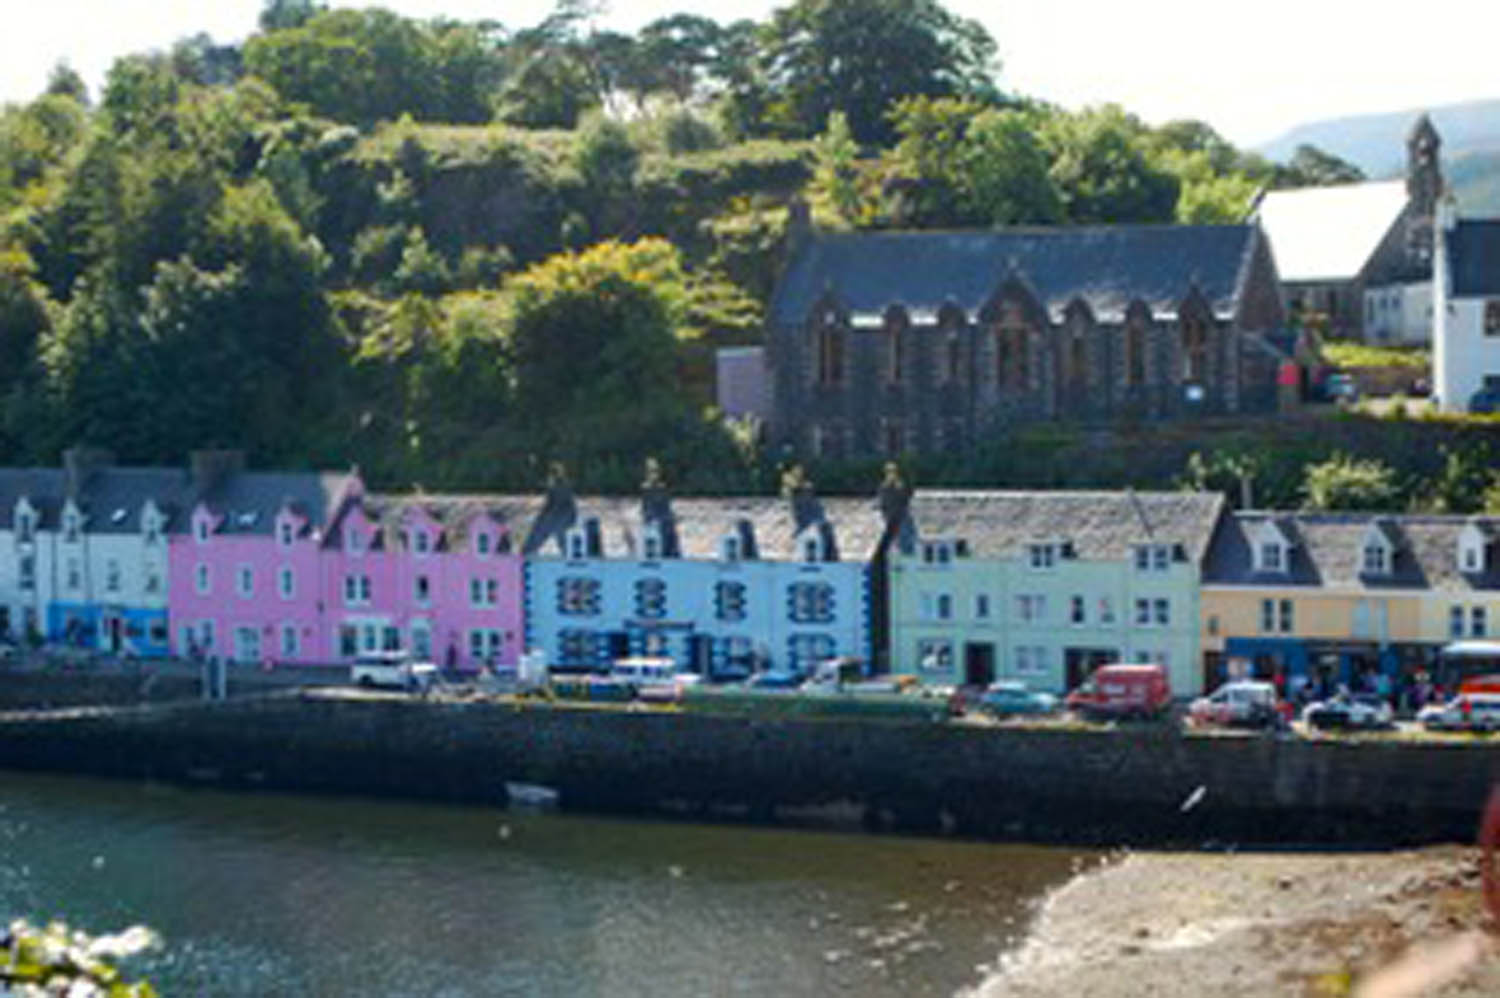 painted houses and businesses in northwest coastal village in Scotland